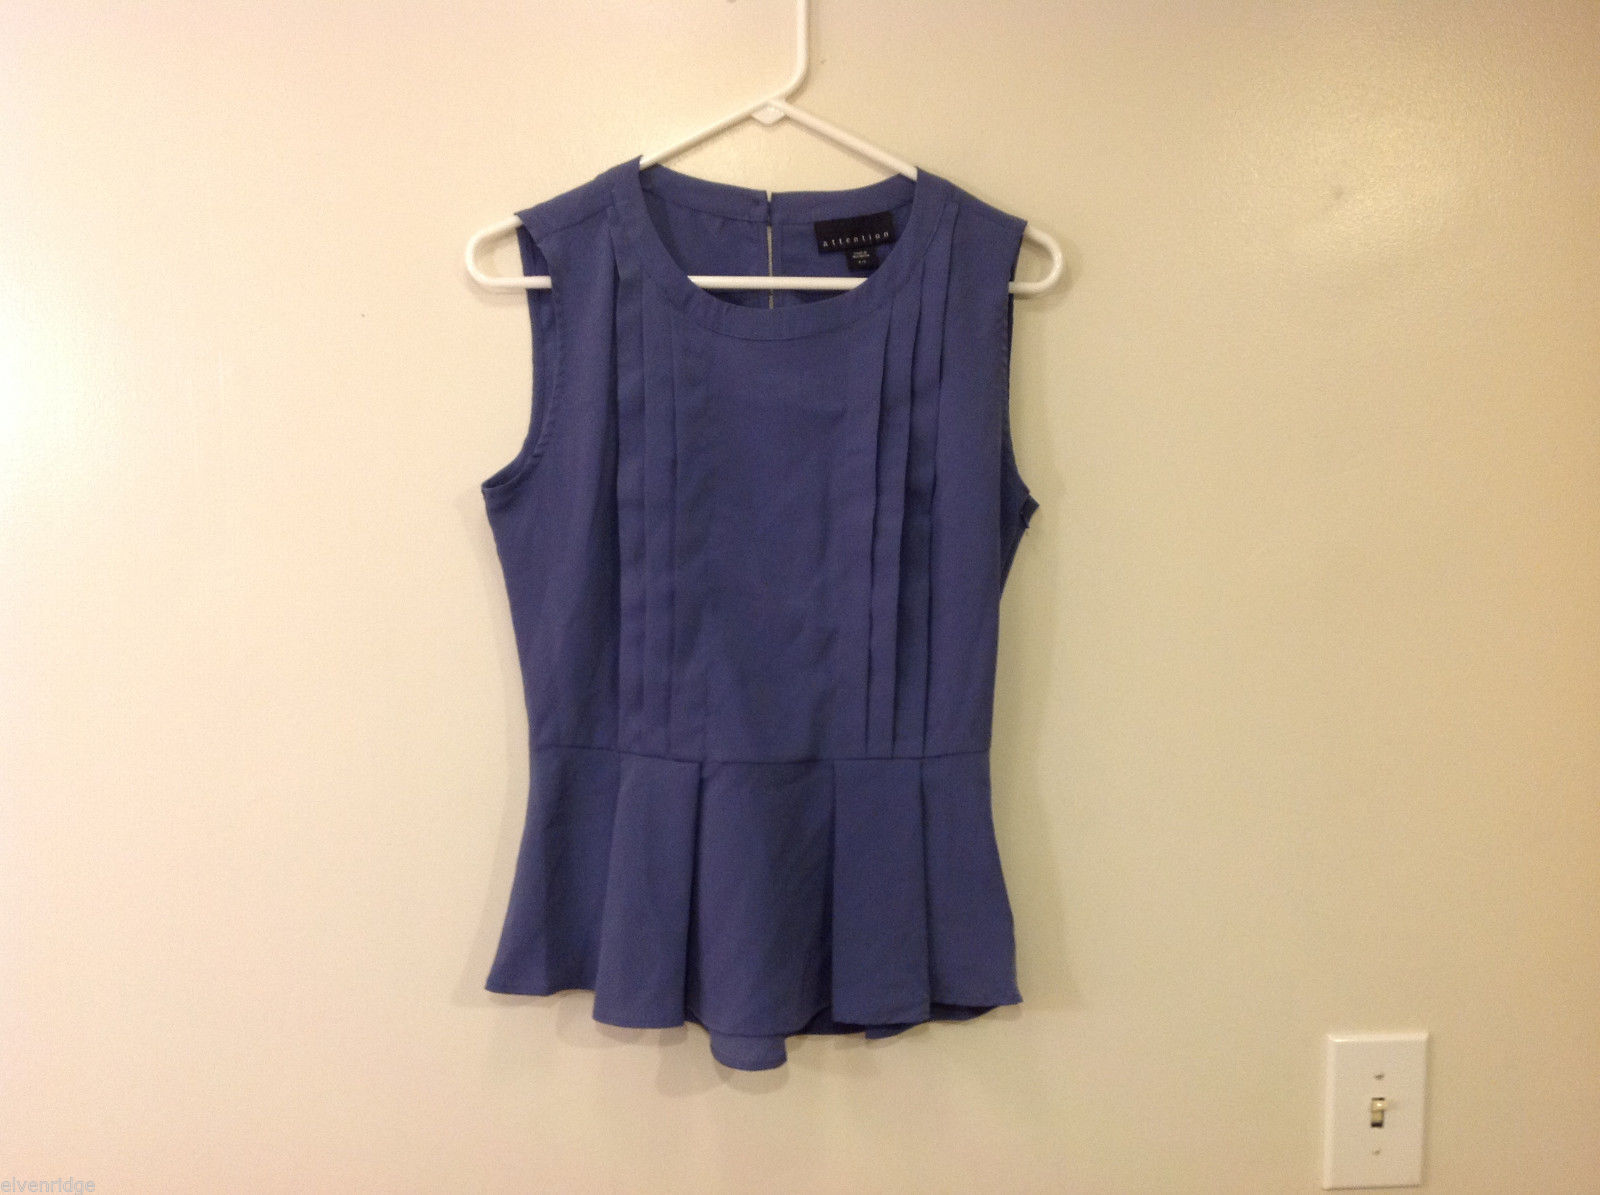 Attention Women's Size S Pintucked Peplum Top Sleeveless Shell Dusty Indigo Blue